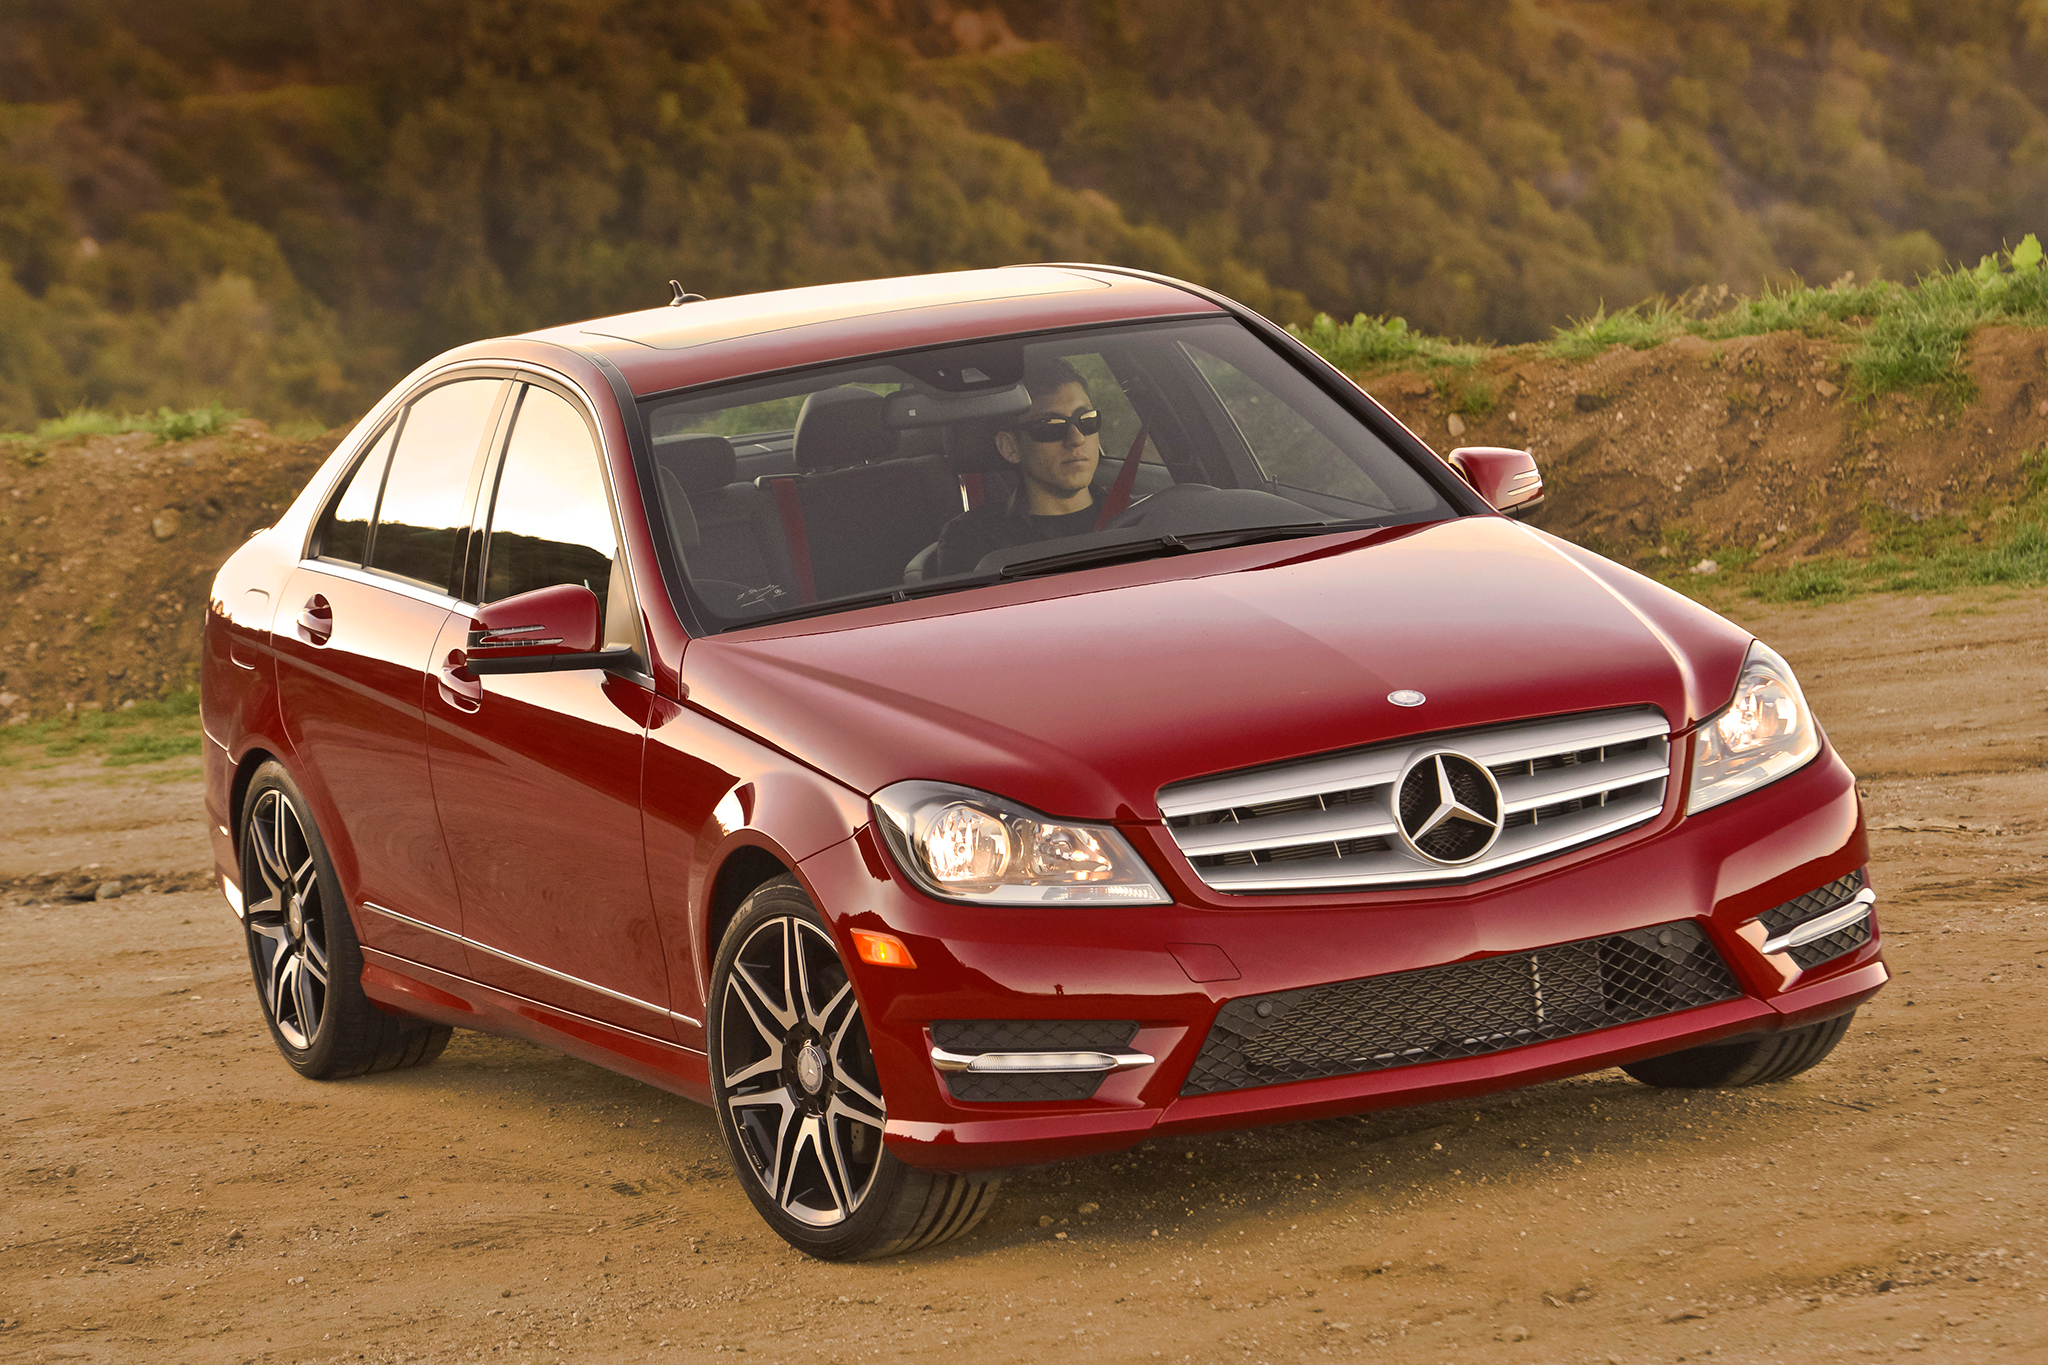 Mercedes-Benz was Best-Selling Luxury Automaker in 2013